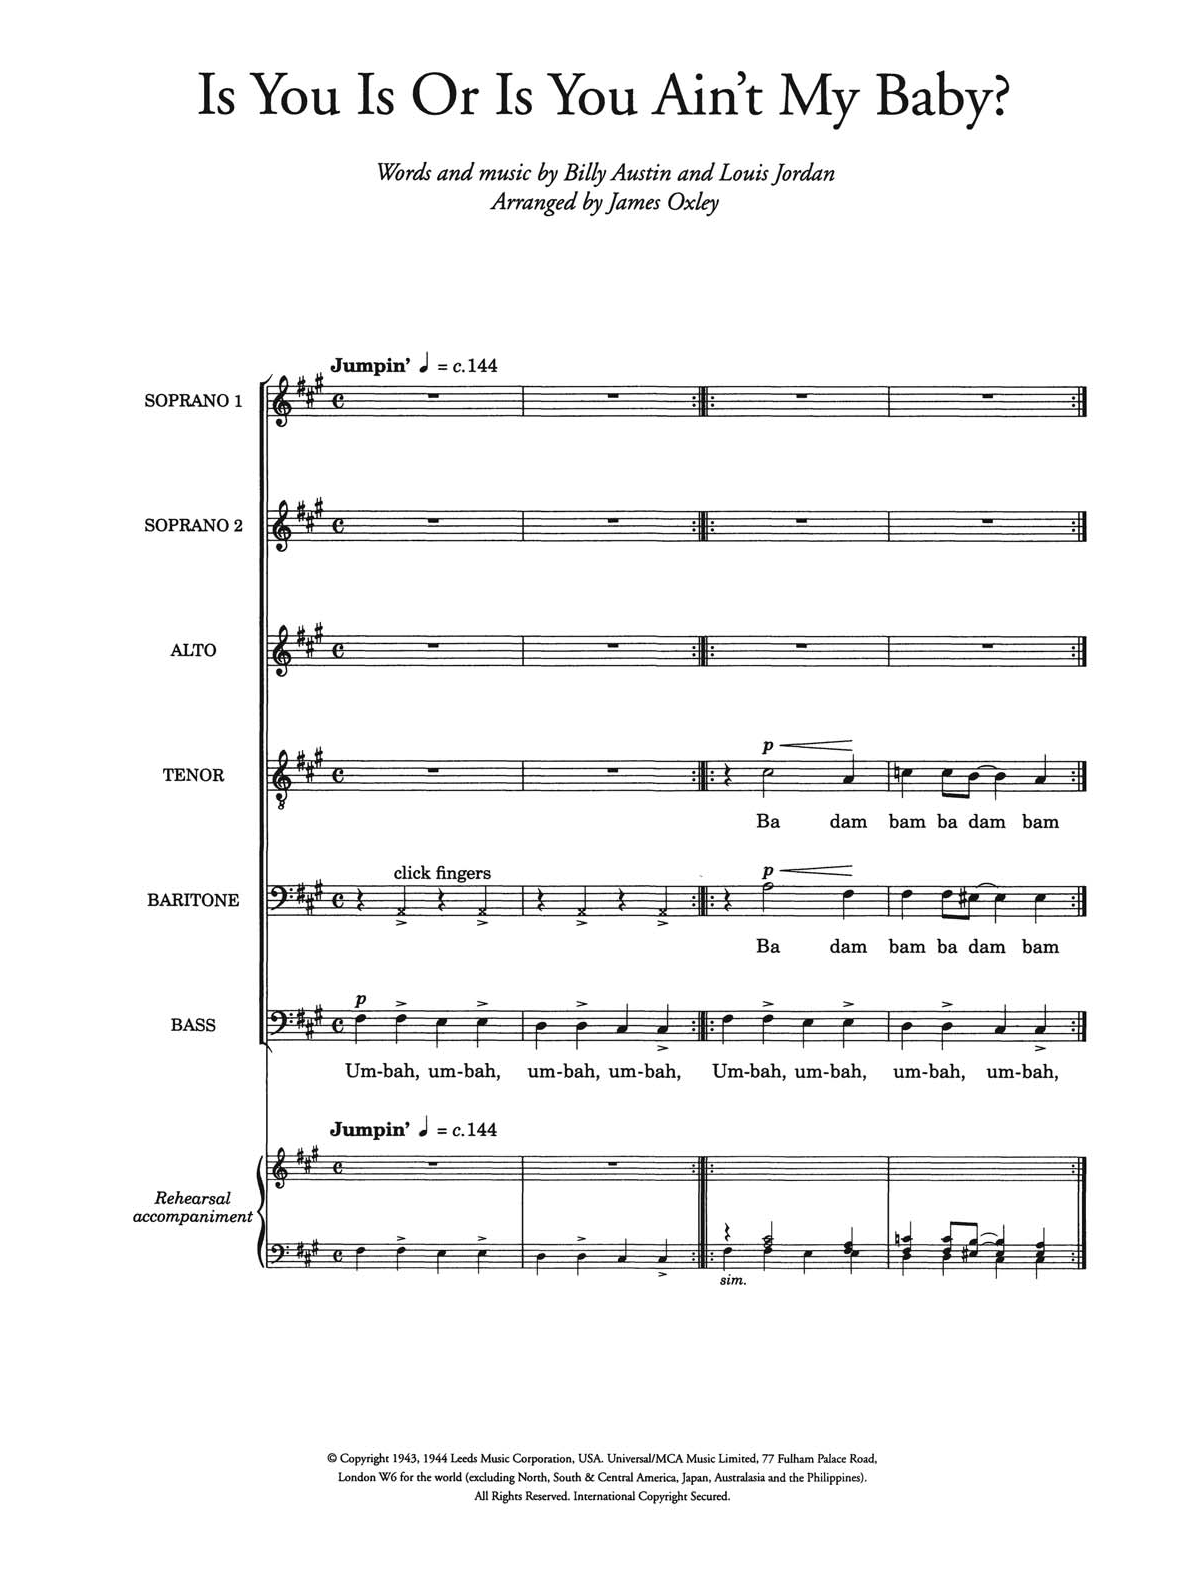 Is You Is, Or Is You Ain't (Ma' Baby) (arr. James Oxley) Sheet Music